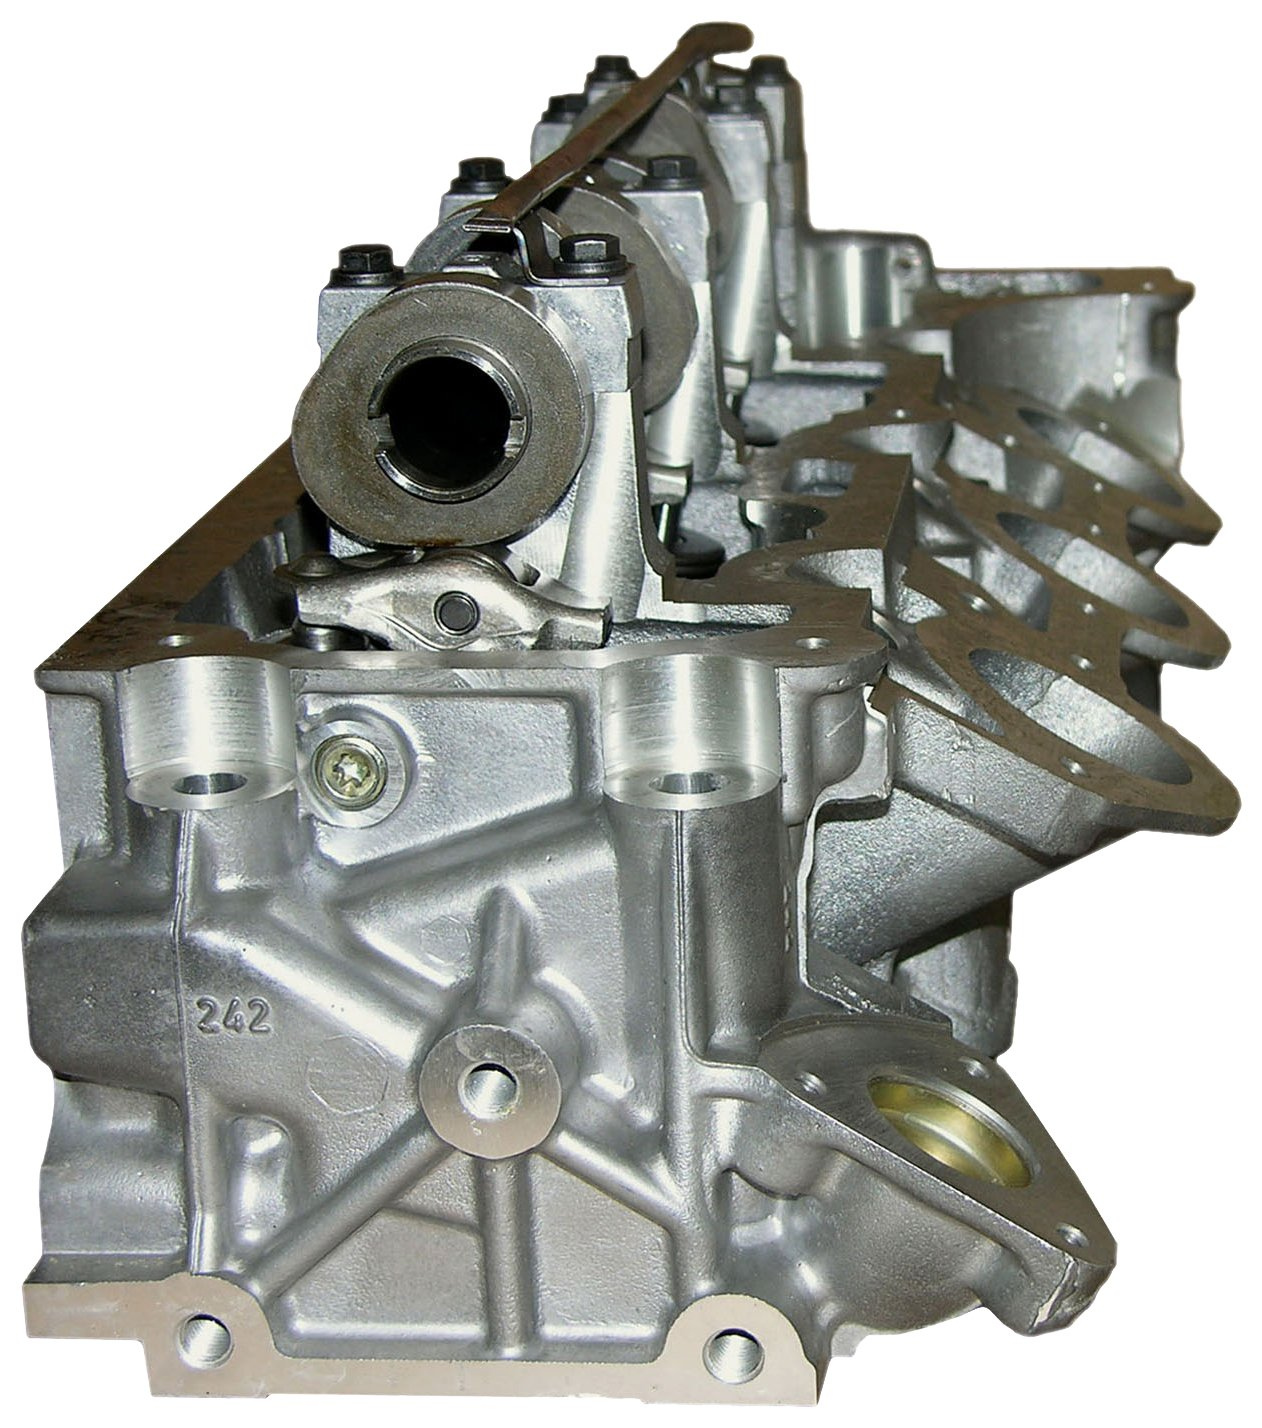 PROFessional Powertrain 2FT6 Ford 4.0L 97-01 Remanufactured Cylinder Head